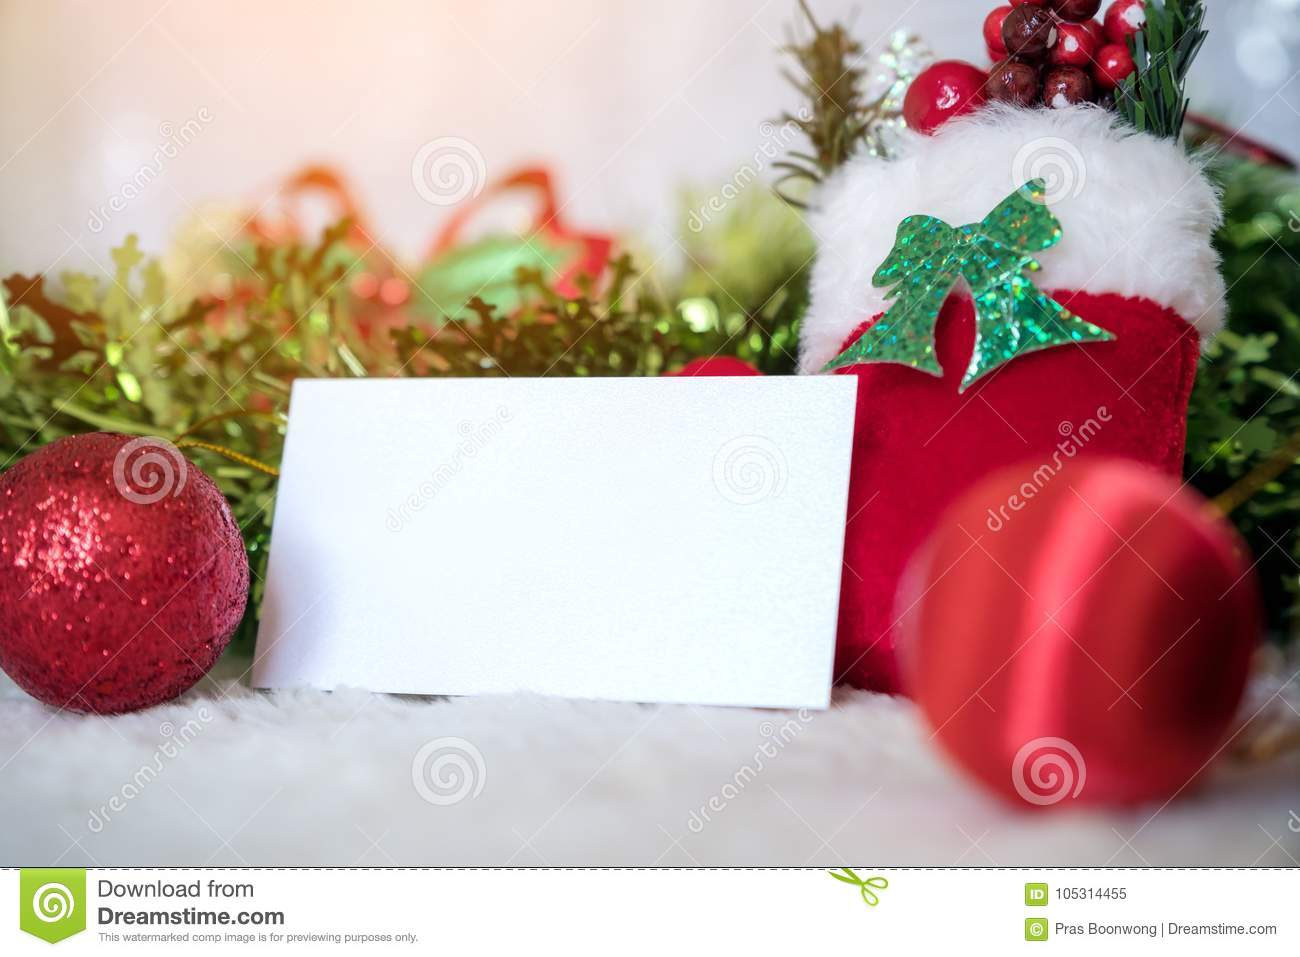 mockup image of white blank name card with christmas decorations - Christmas Decorations Names